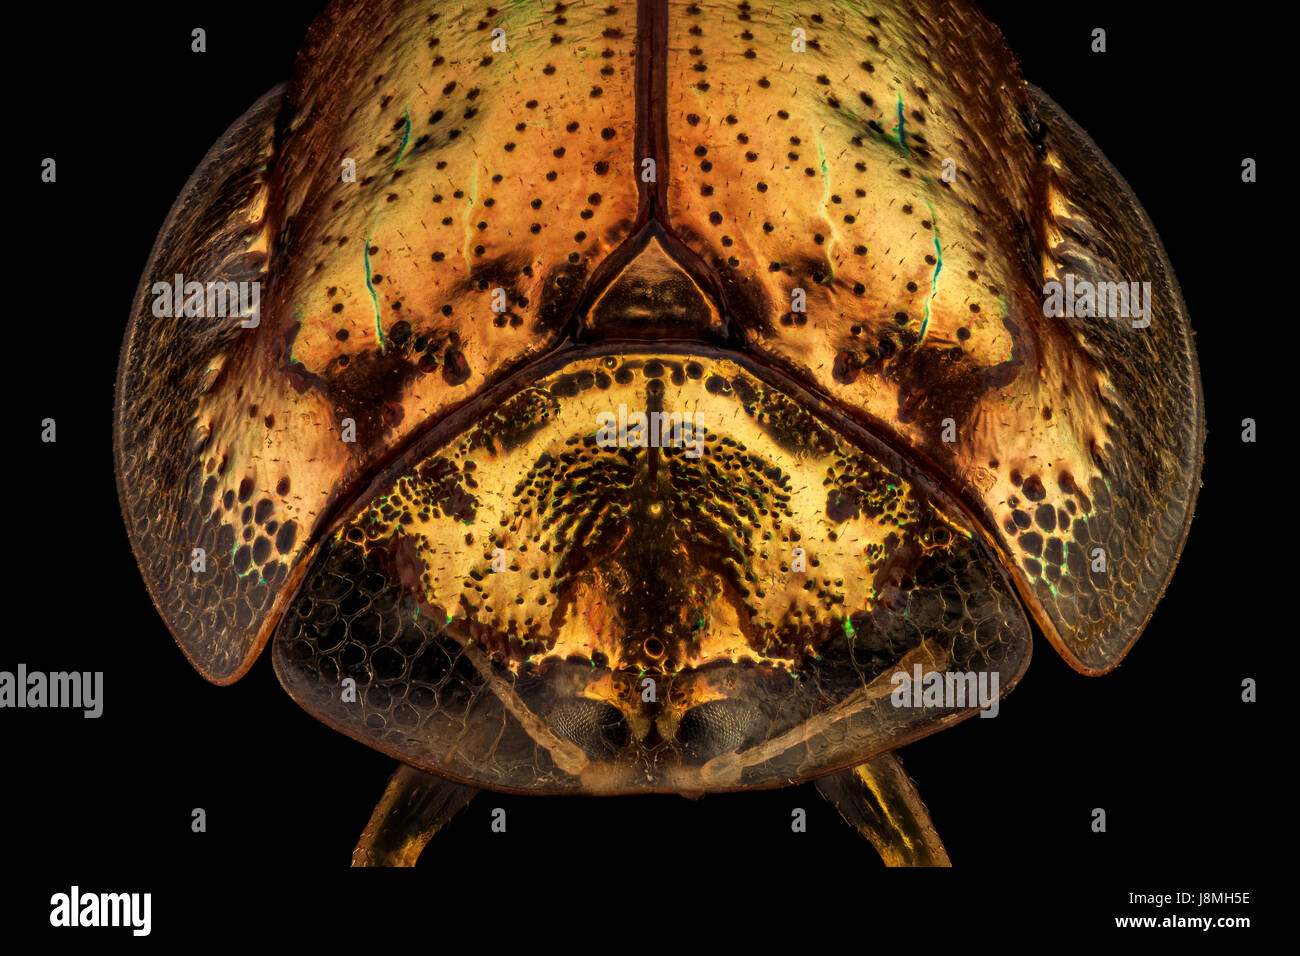 Frontal view of a golden tortoise beetle.The golden tortoise beetle is a species of beetle in the leaf beetle family, - Stock Image